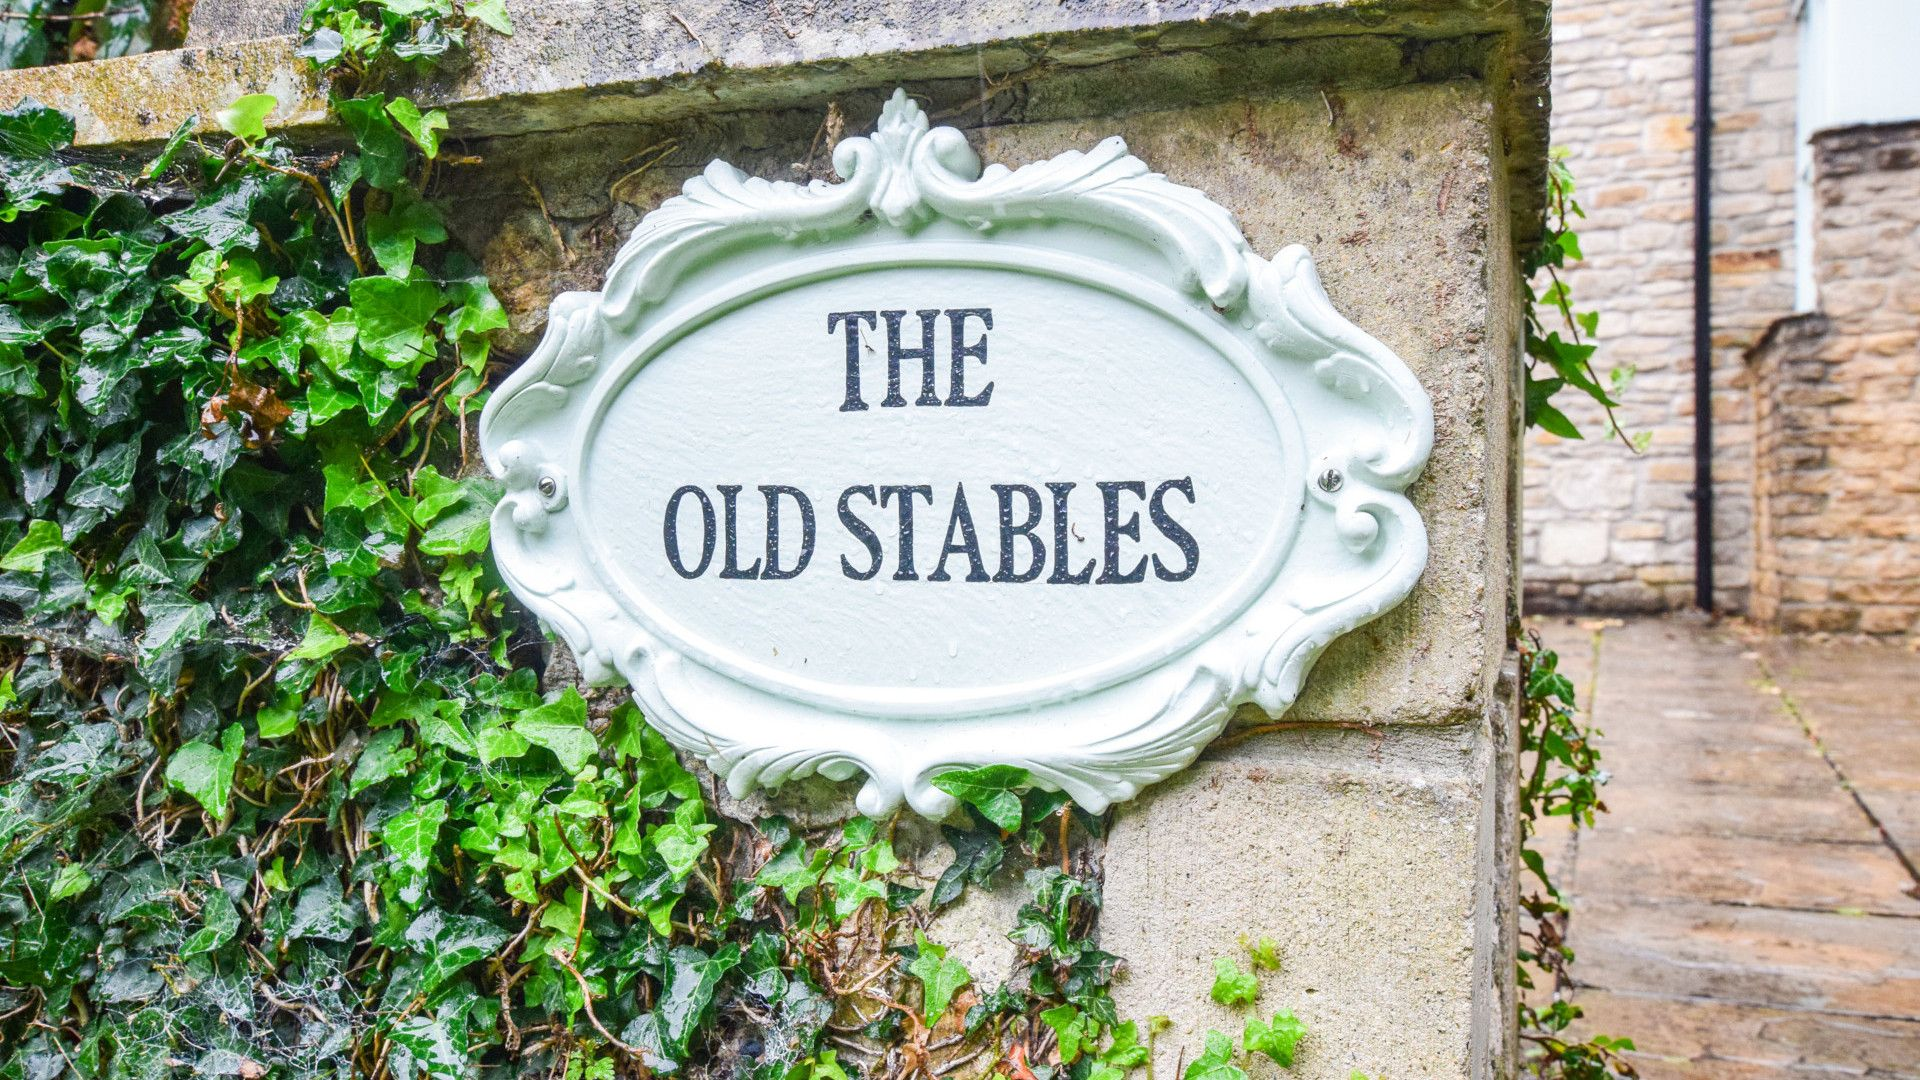 Welcome to the Old Stables (No. 2),  2 The Old Stables Bolthole Retreats